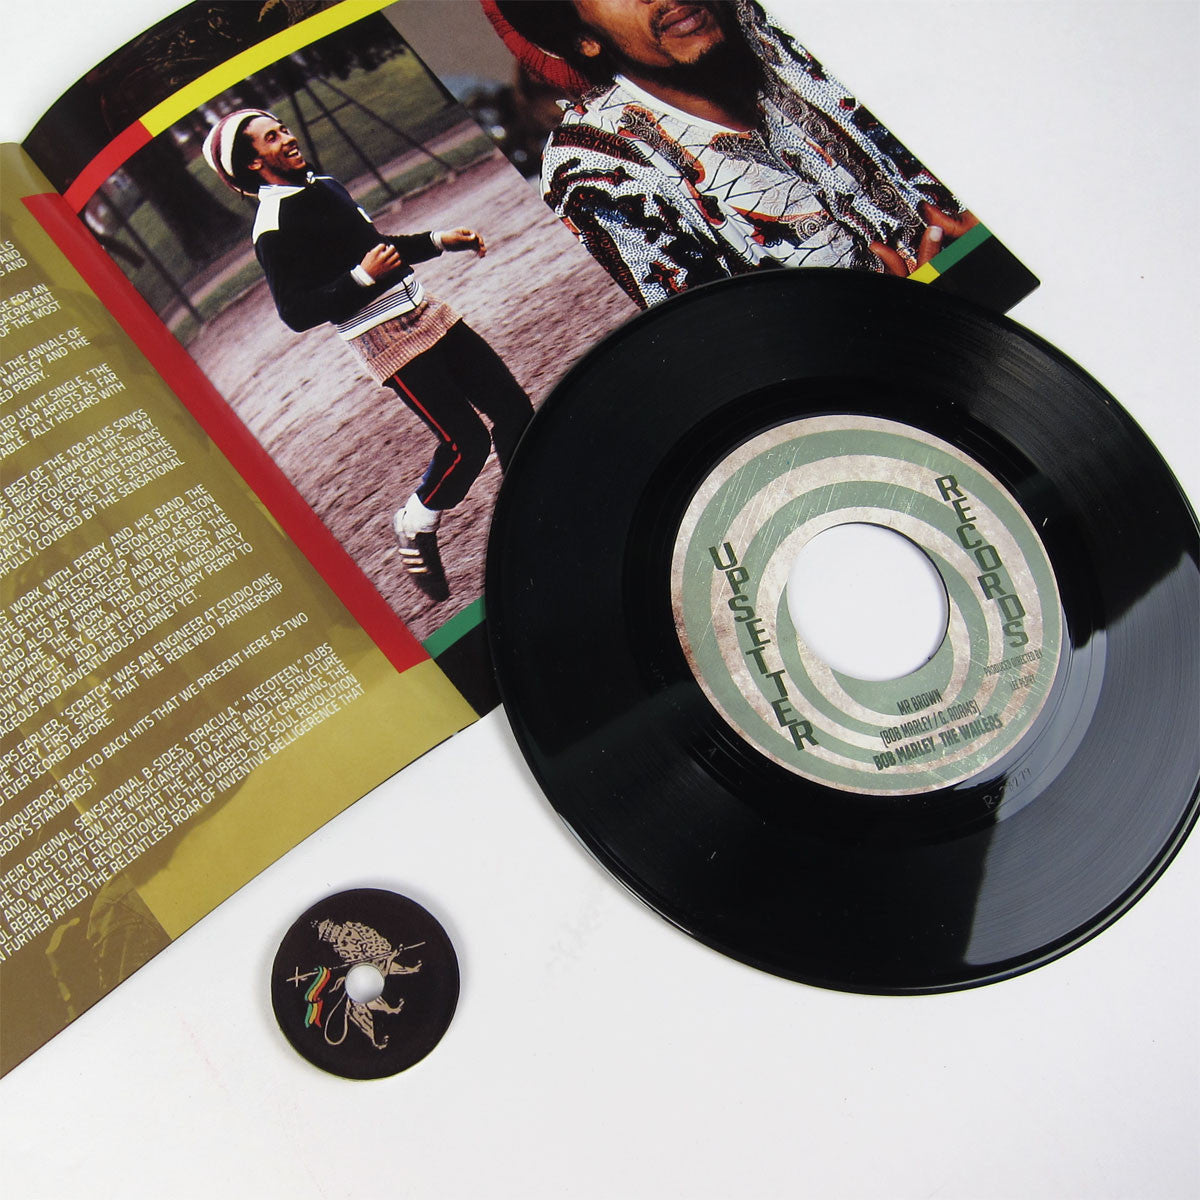 "Bob Marley: The Best Of The Upsetter Singles 1970-1972 (Lee Perry) 7x7"" Boxset detail"